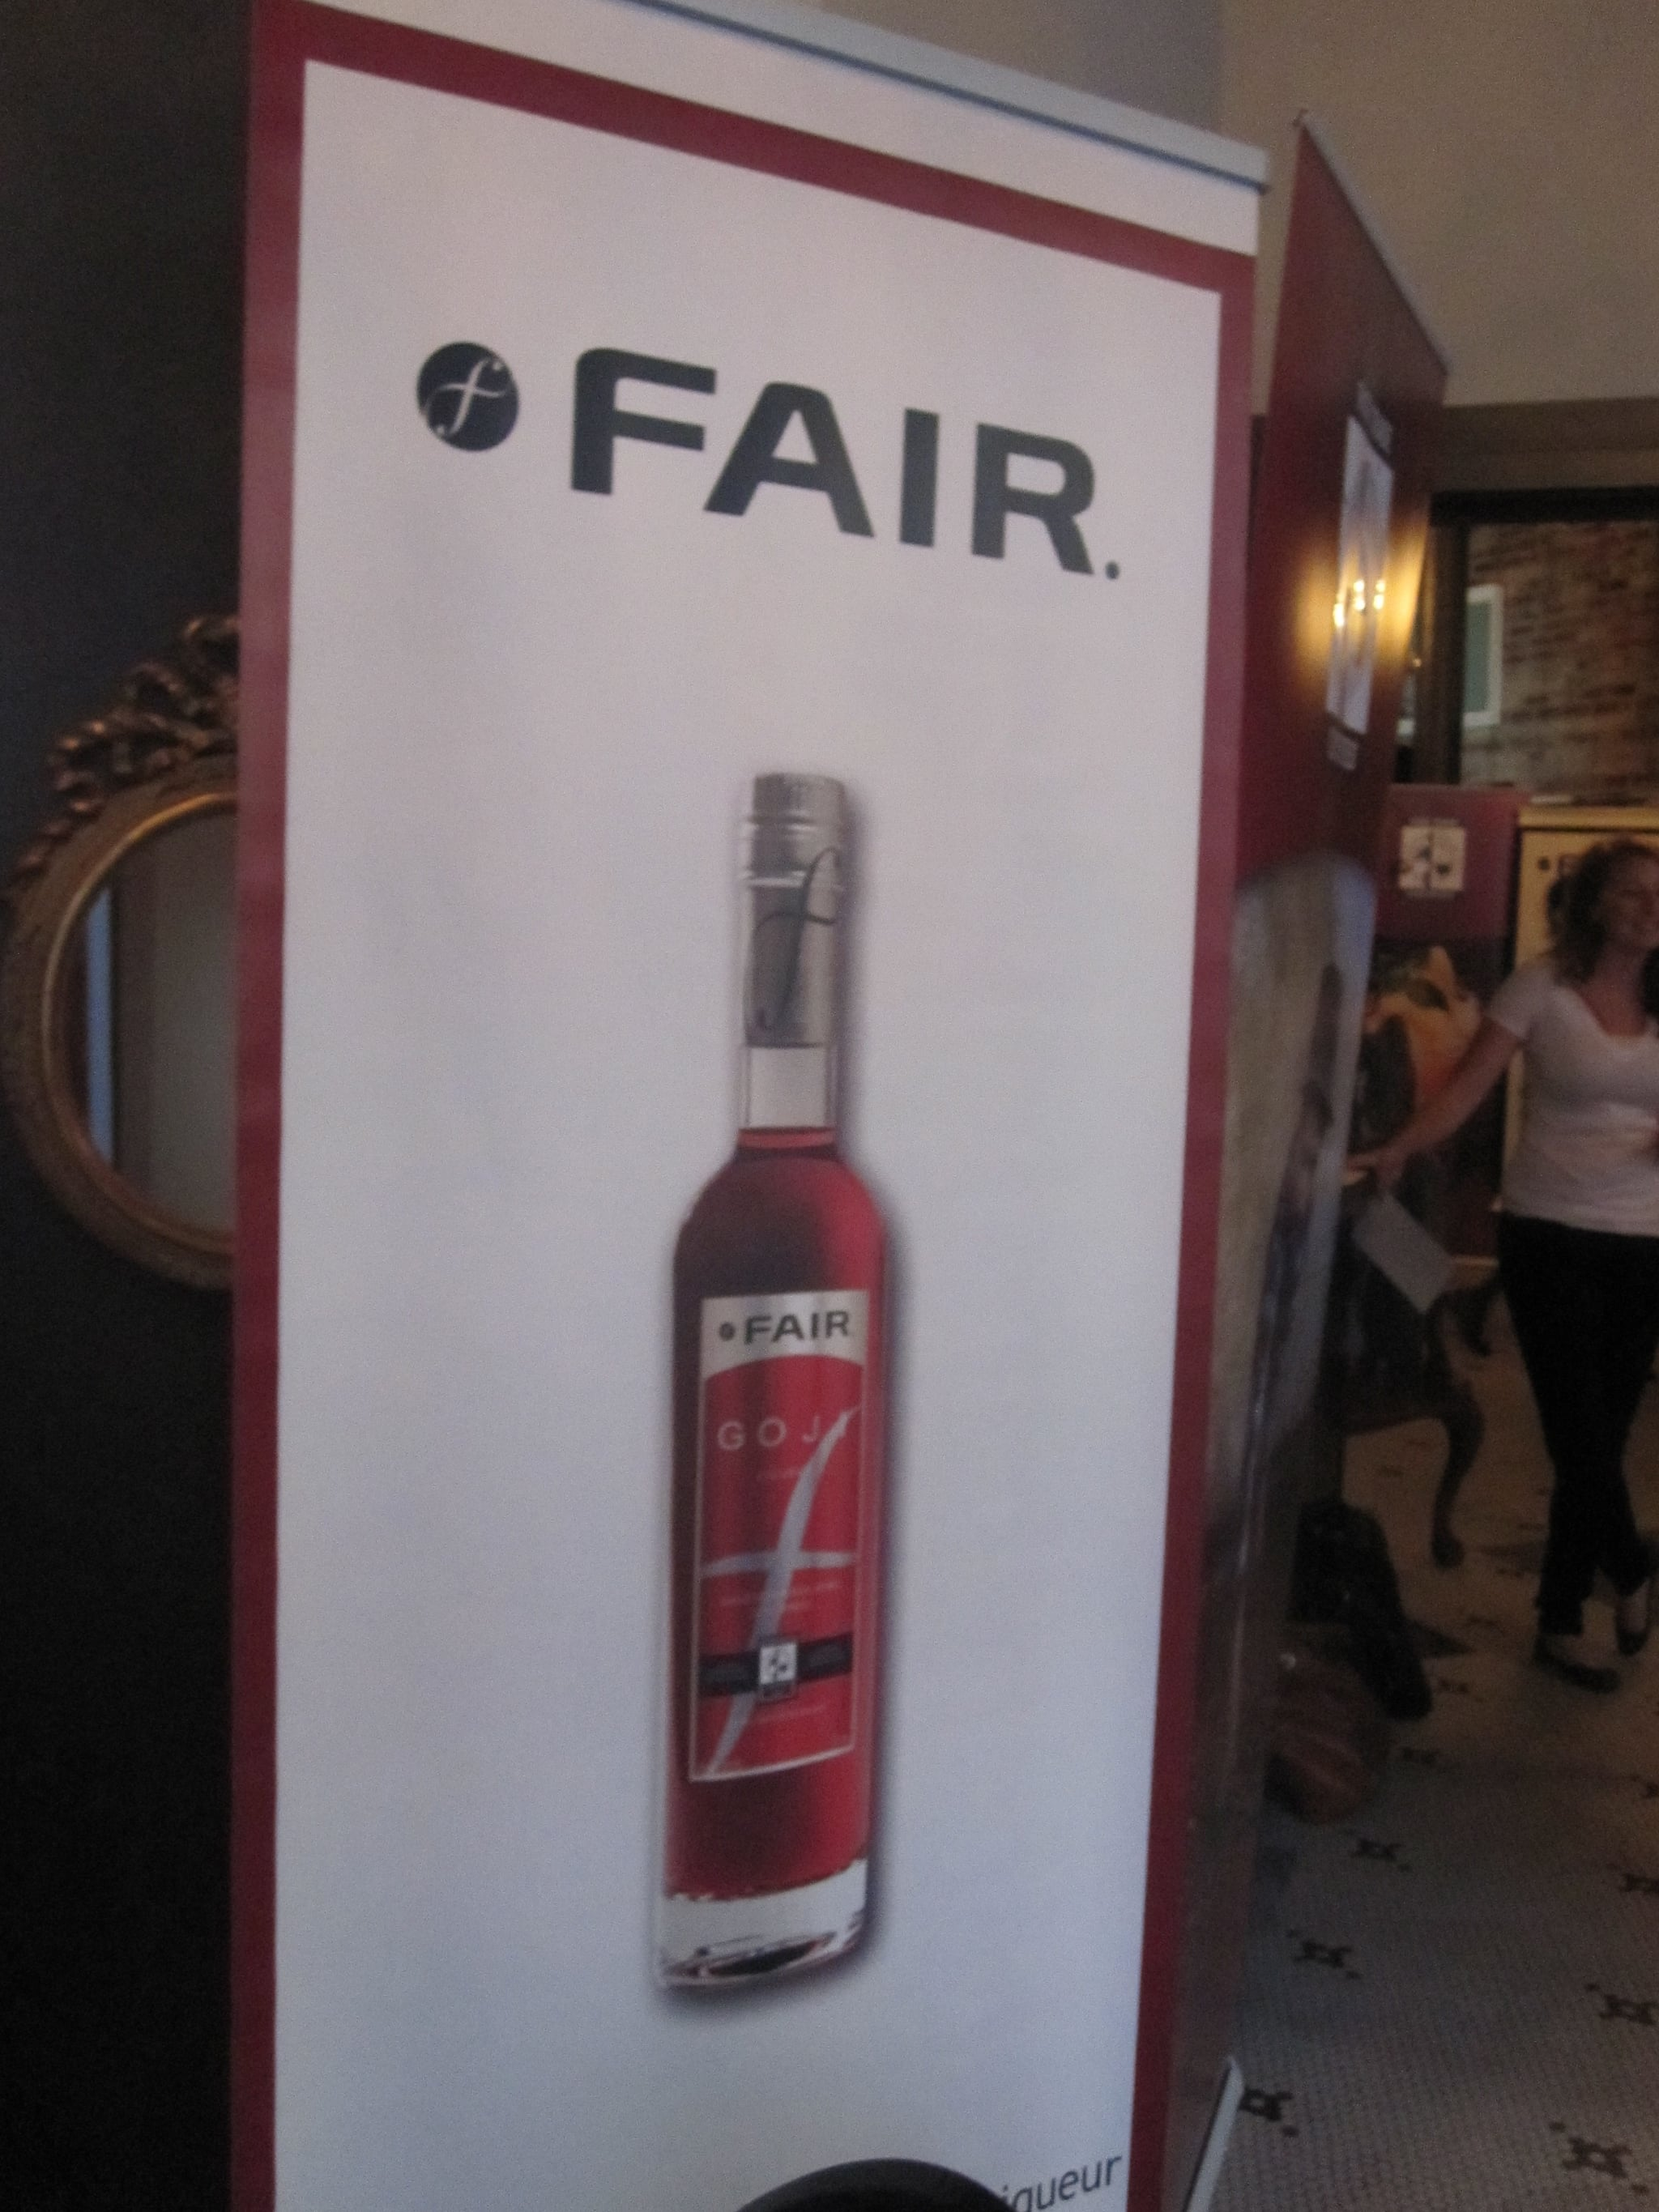 A poster of the goji liqueur, isn't it a beautiful red color?